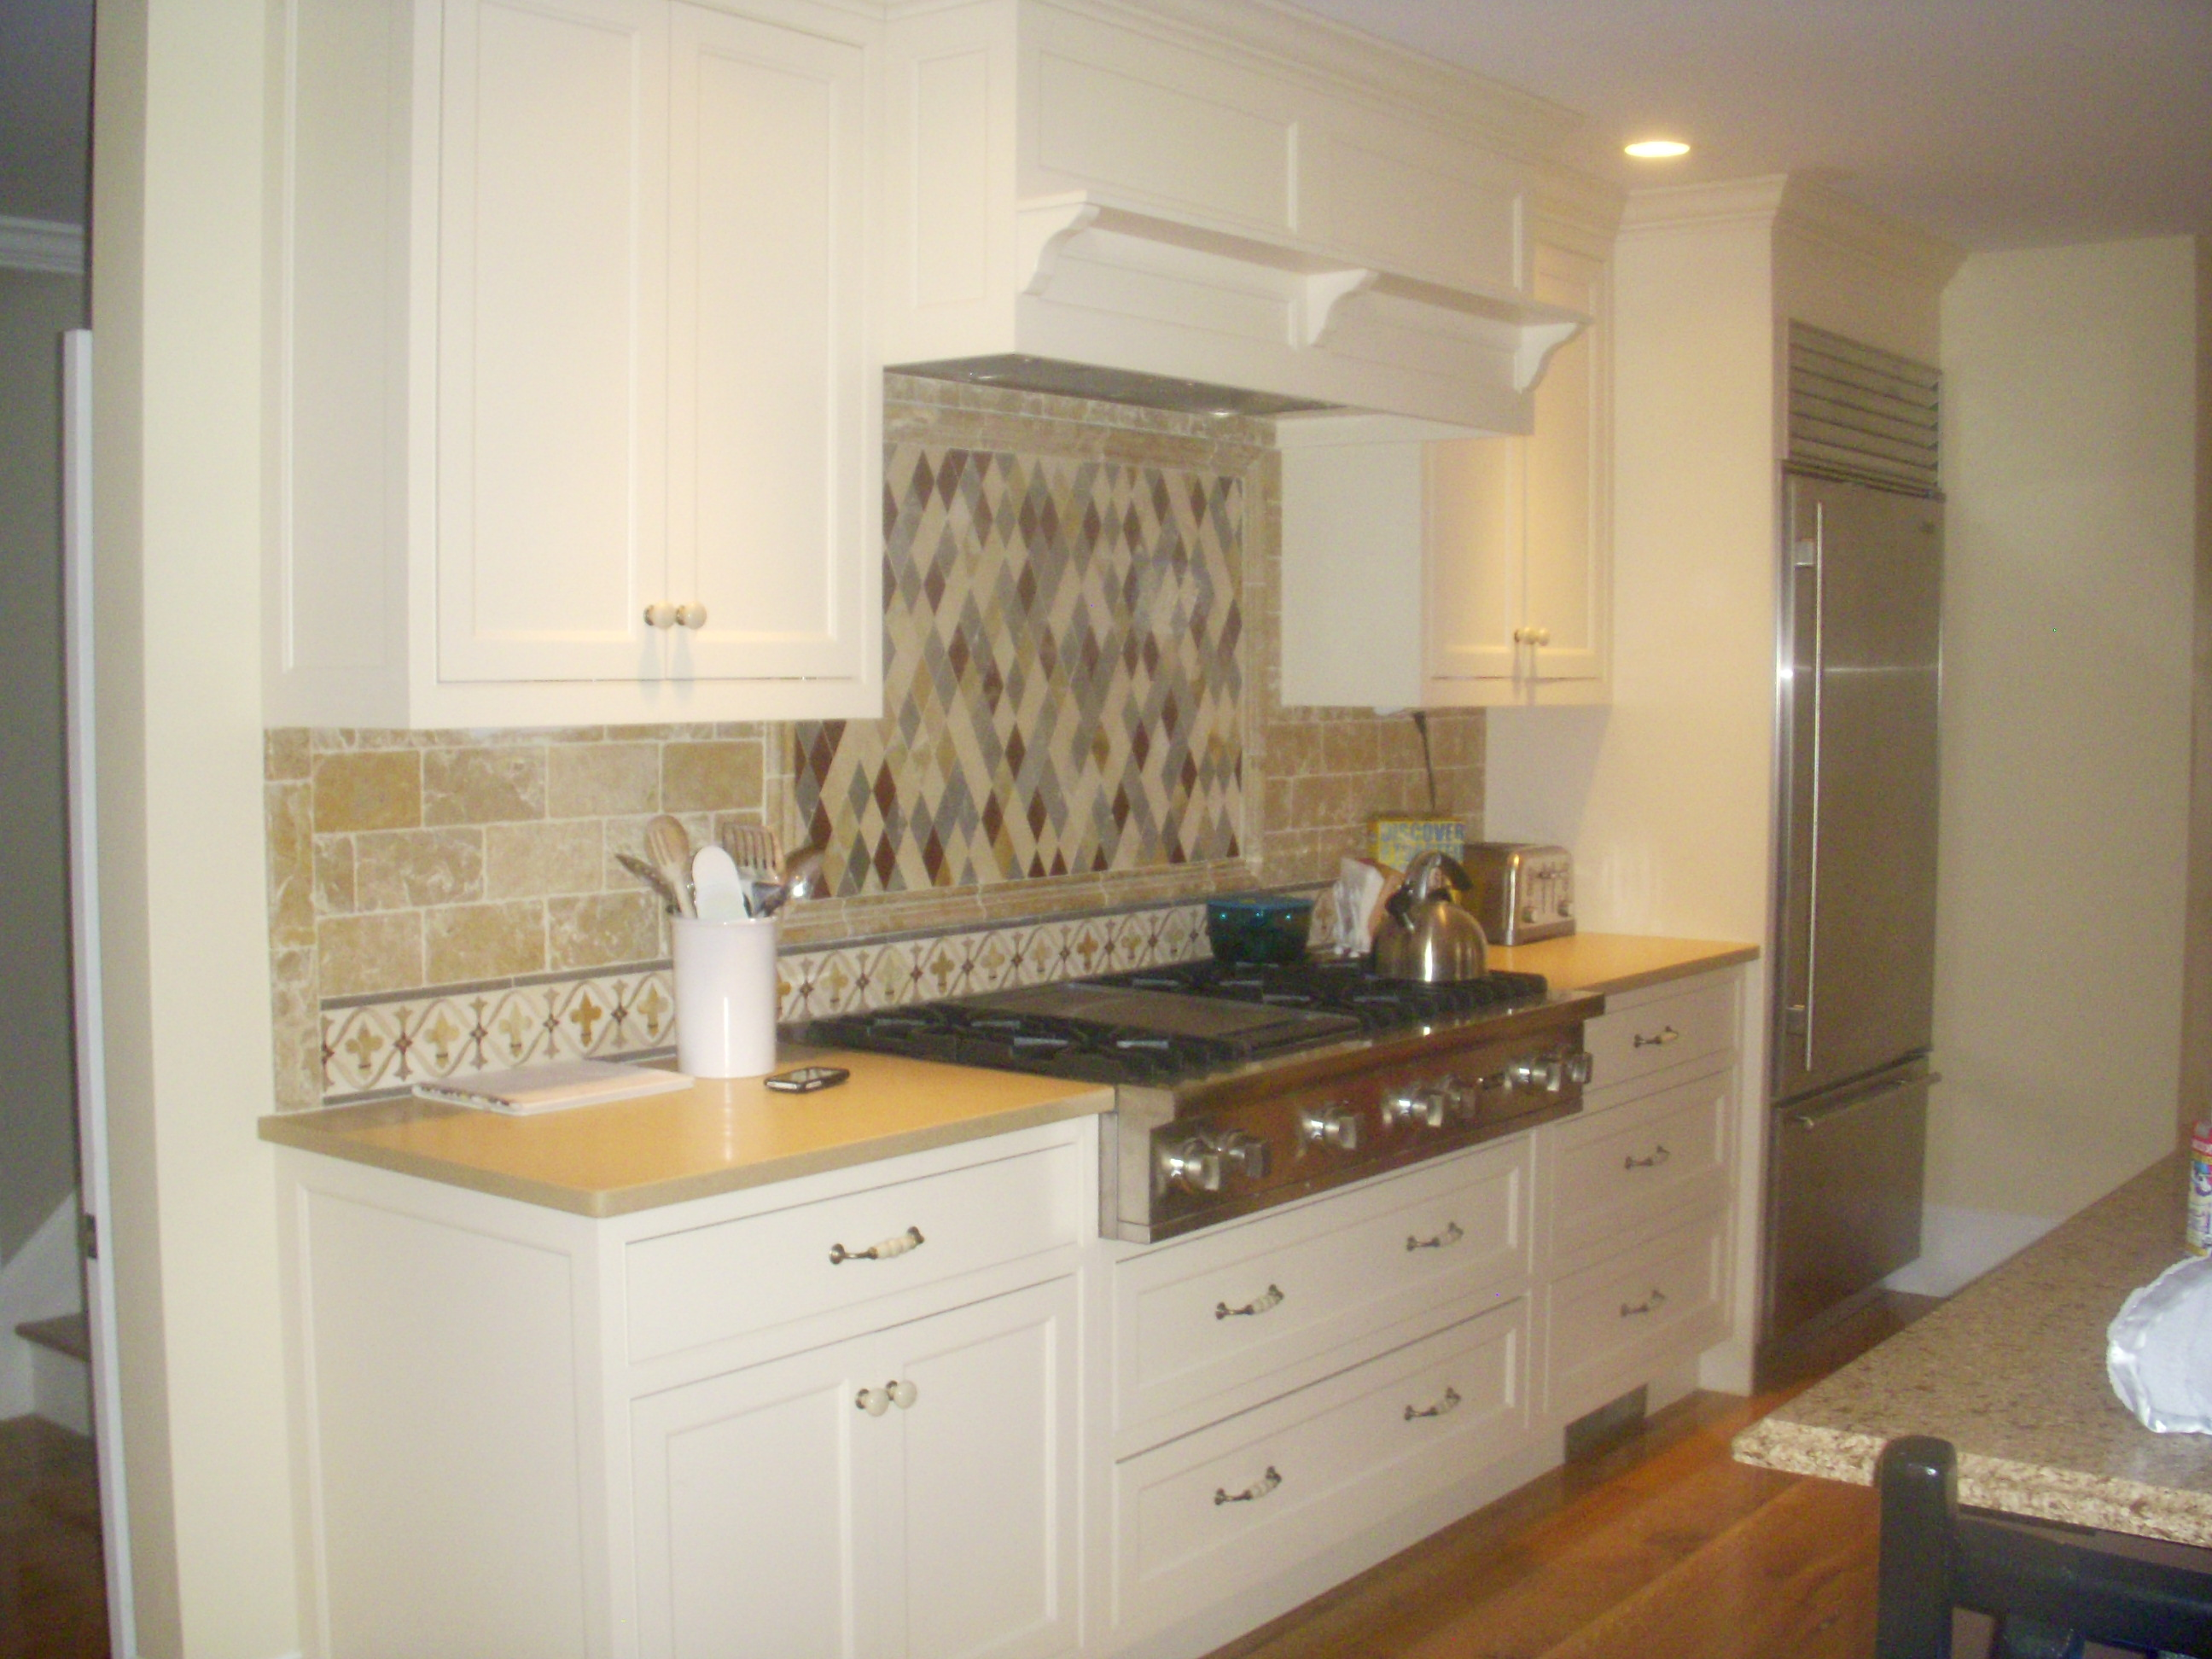 Ventilation Hoods Kitchen - Wood Kitchen Hood - Corner Range Hood Mantle Images